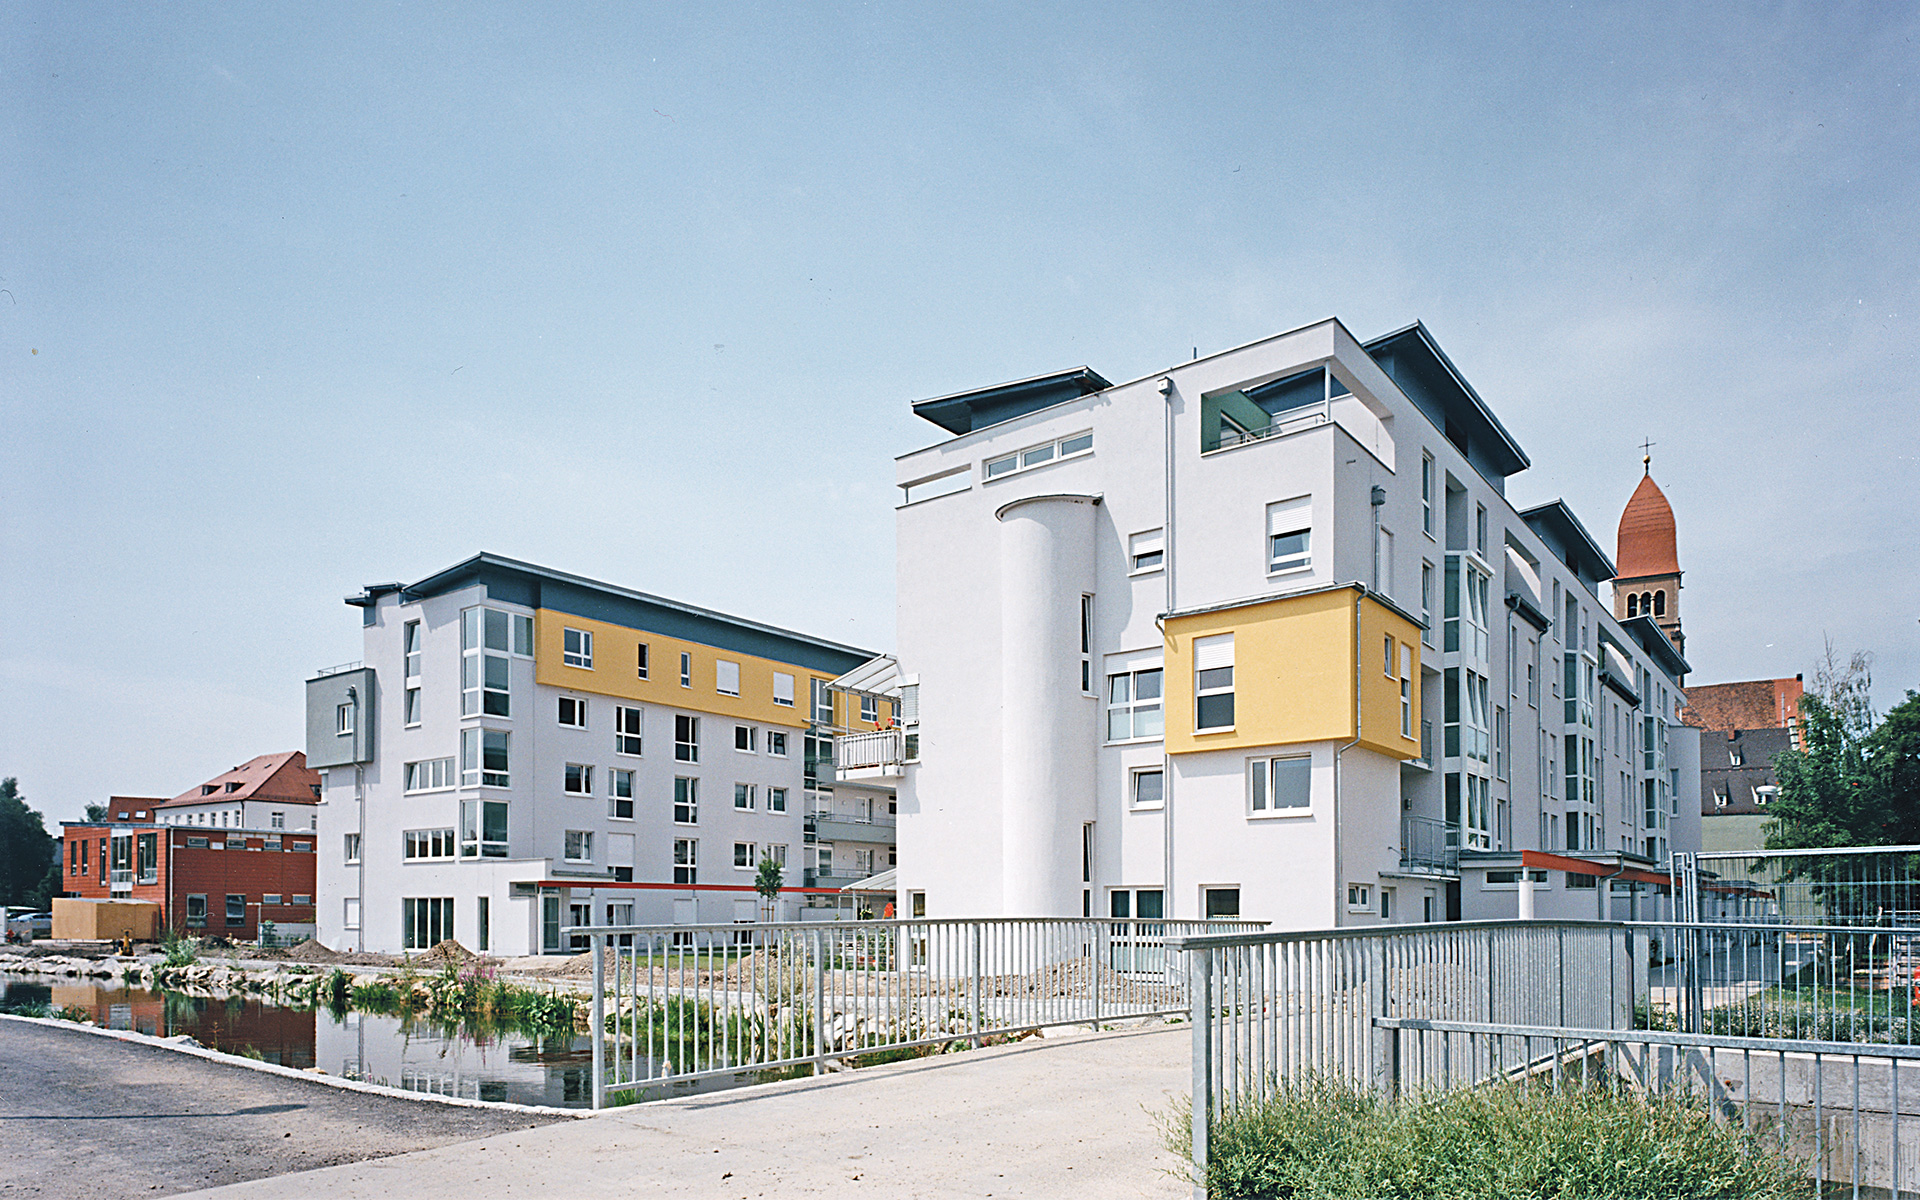 A residential complex was built in the Mühlbach district of Augsburg in 2000.